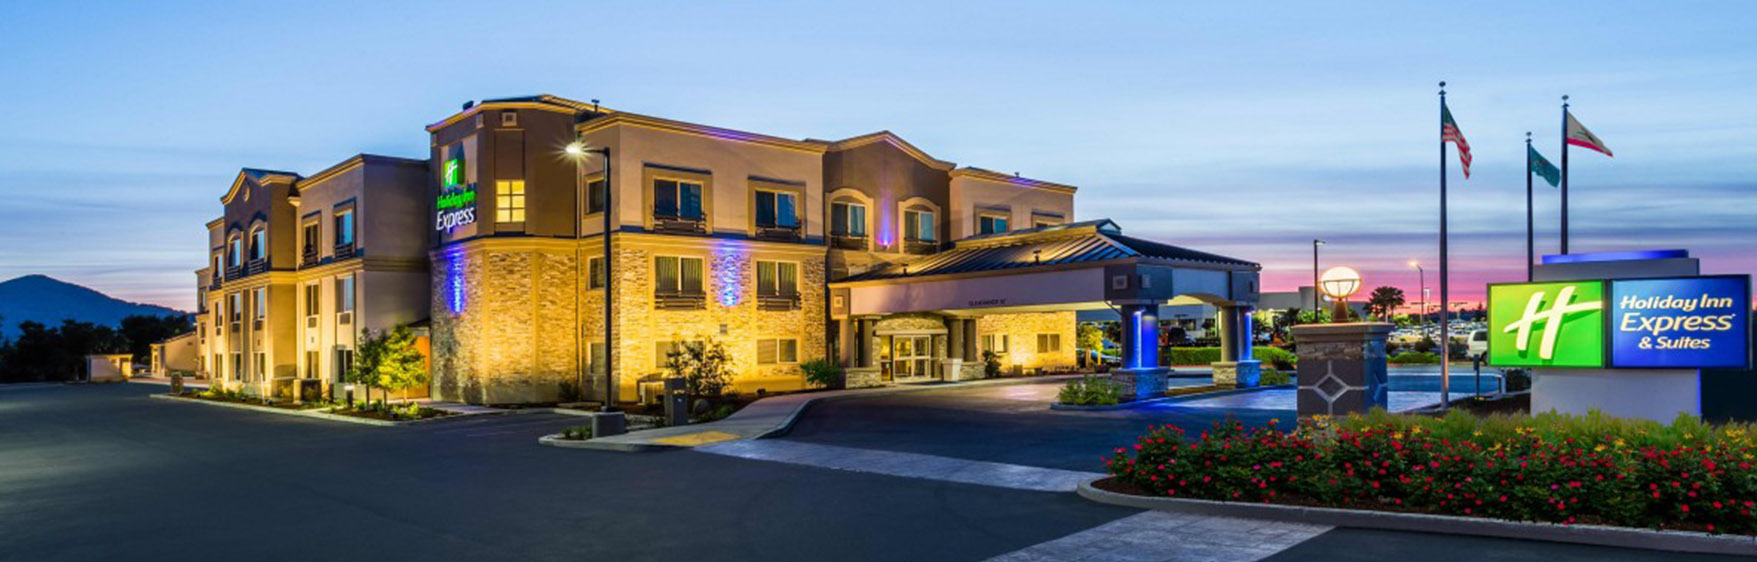 Welcome to Holiday Inn Express & Suites Morgan Hill